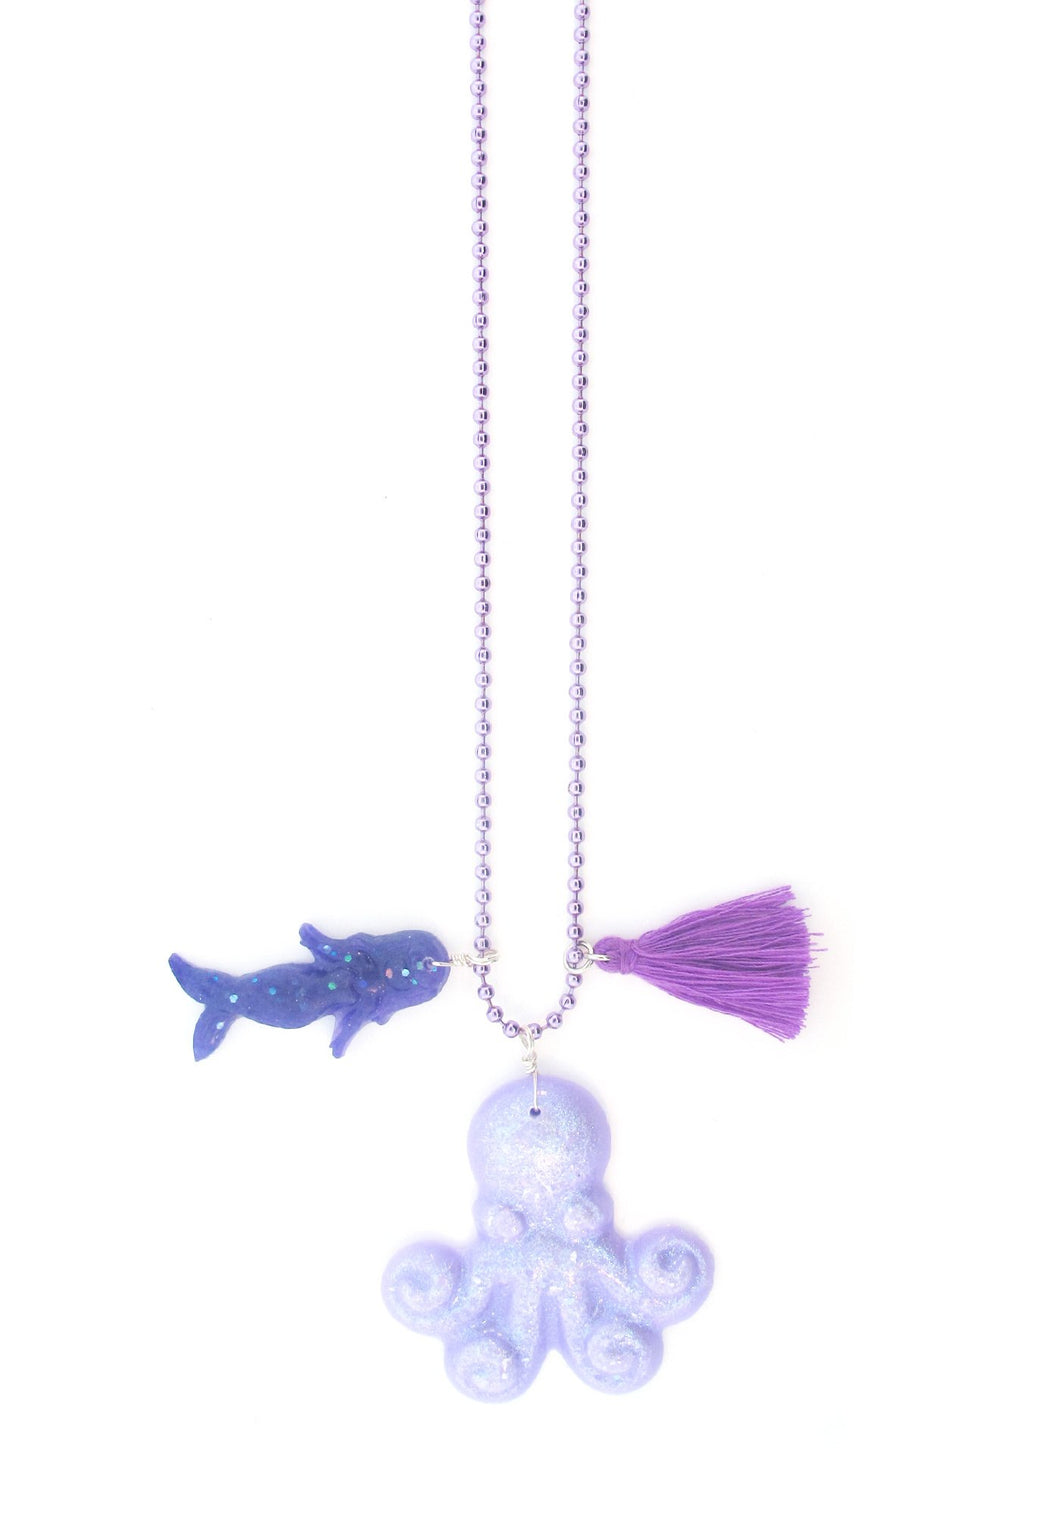 Octopus Resin Necklace + Postcard